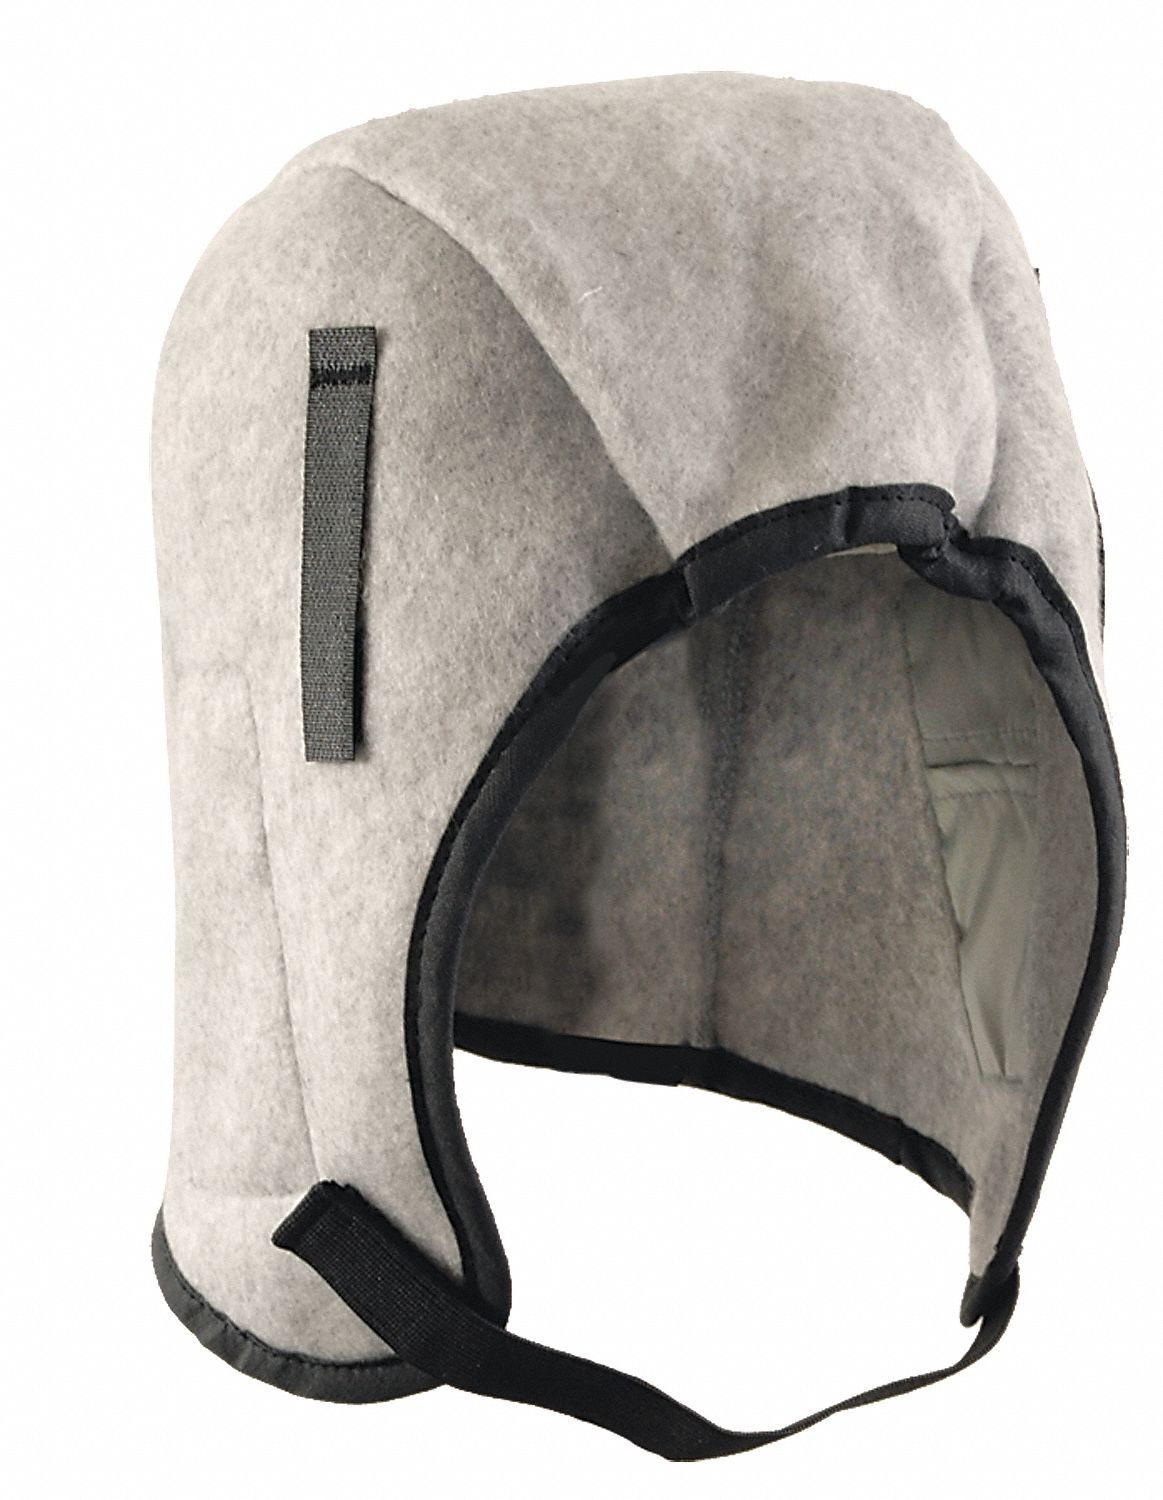 Hard Hat Liner,  Universal,  Hook-and-Loop Adjustment Type,  Gray,  Covers Ears, Head